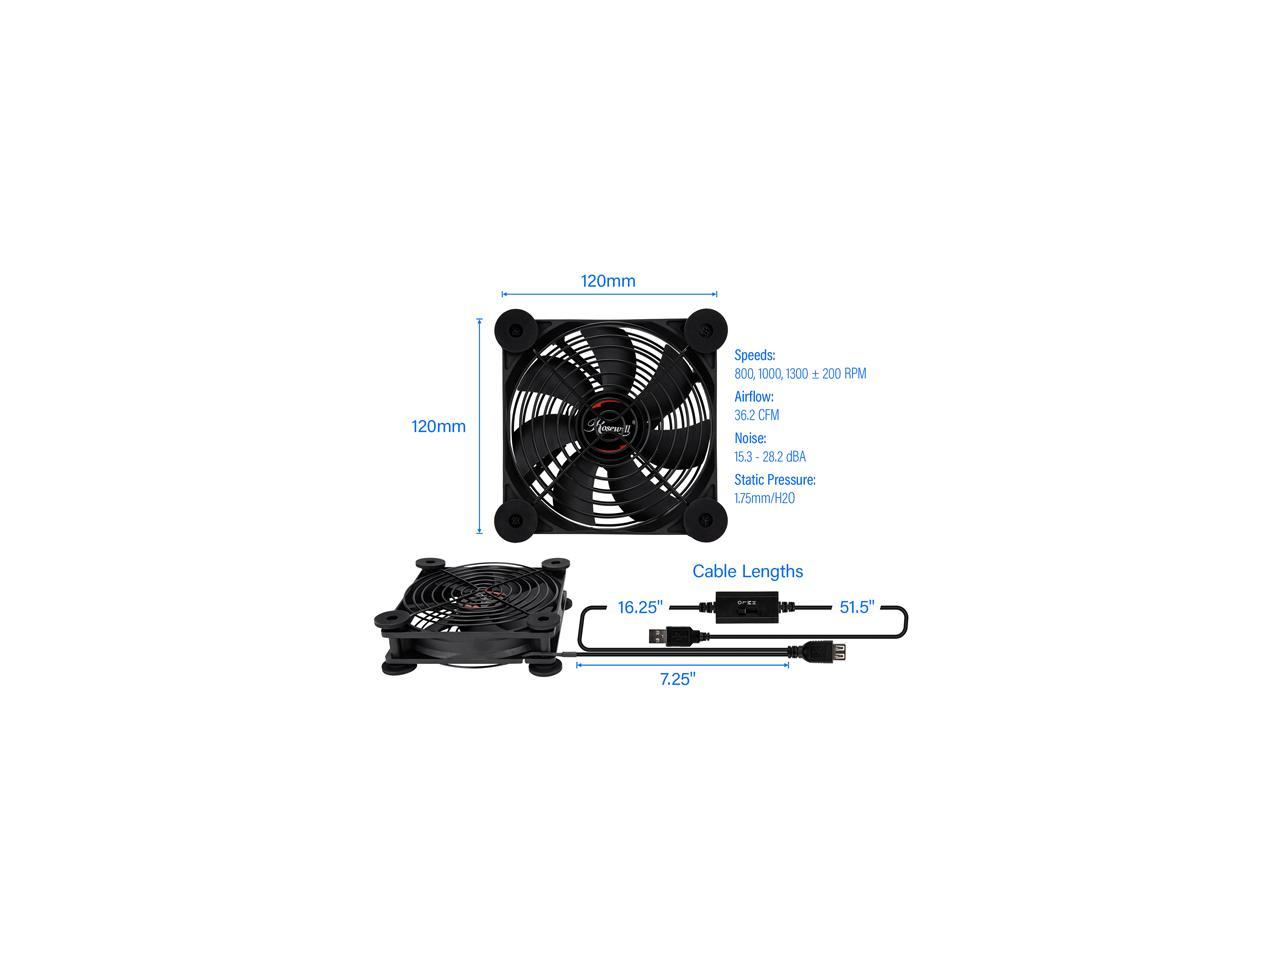 Rosewill 120mm External Usb Fan With Adjustable Controller